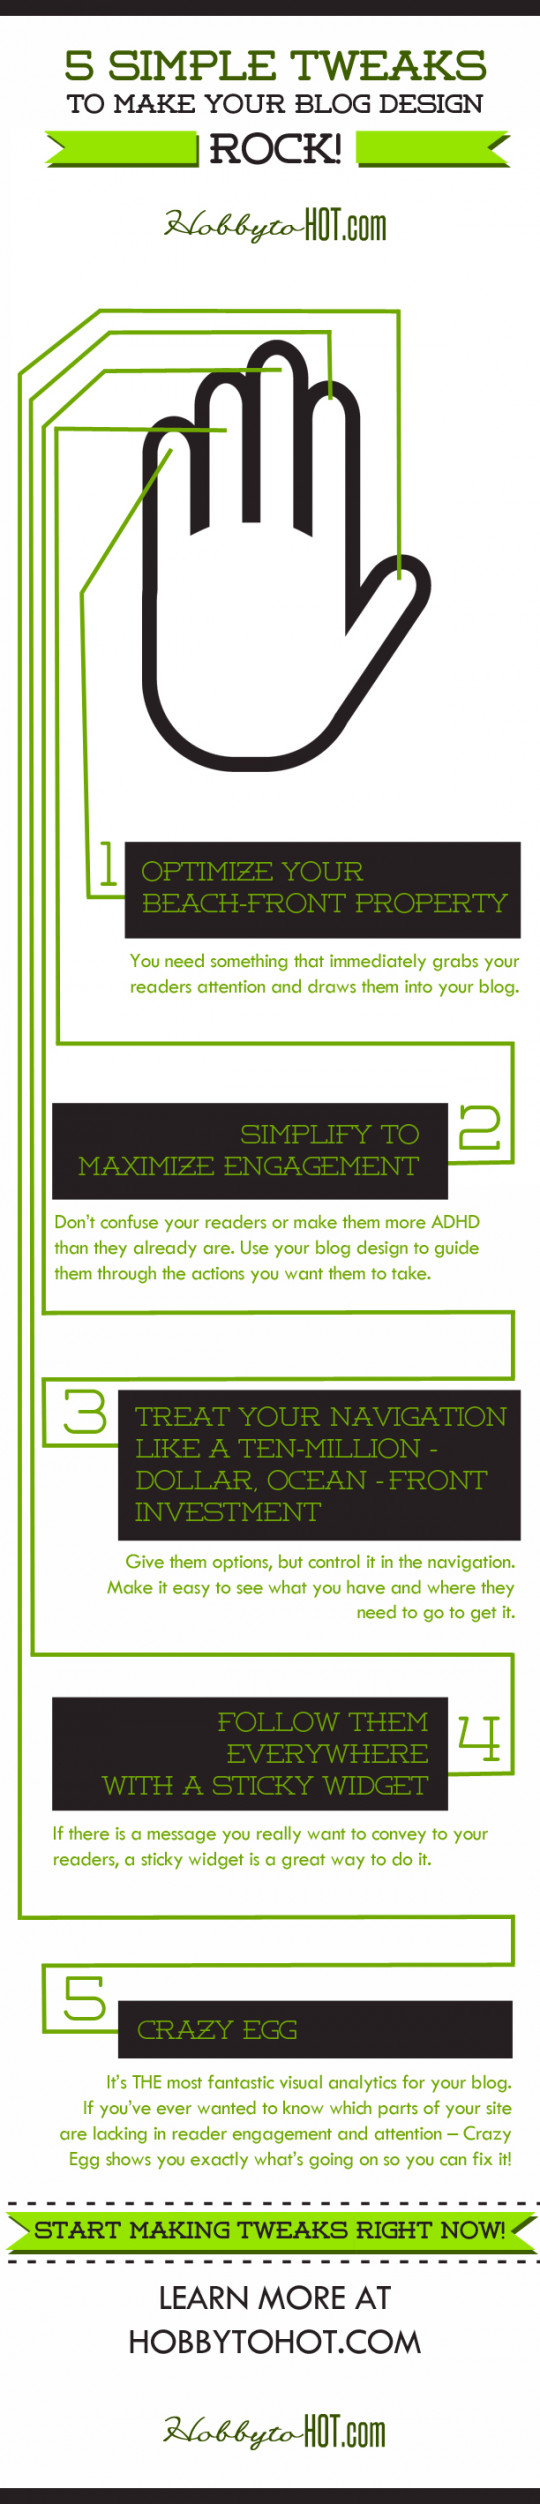 Have a better blogging experience by avoiding these crazy blog design mistakes using these 5 awesome tweaks!